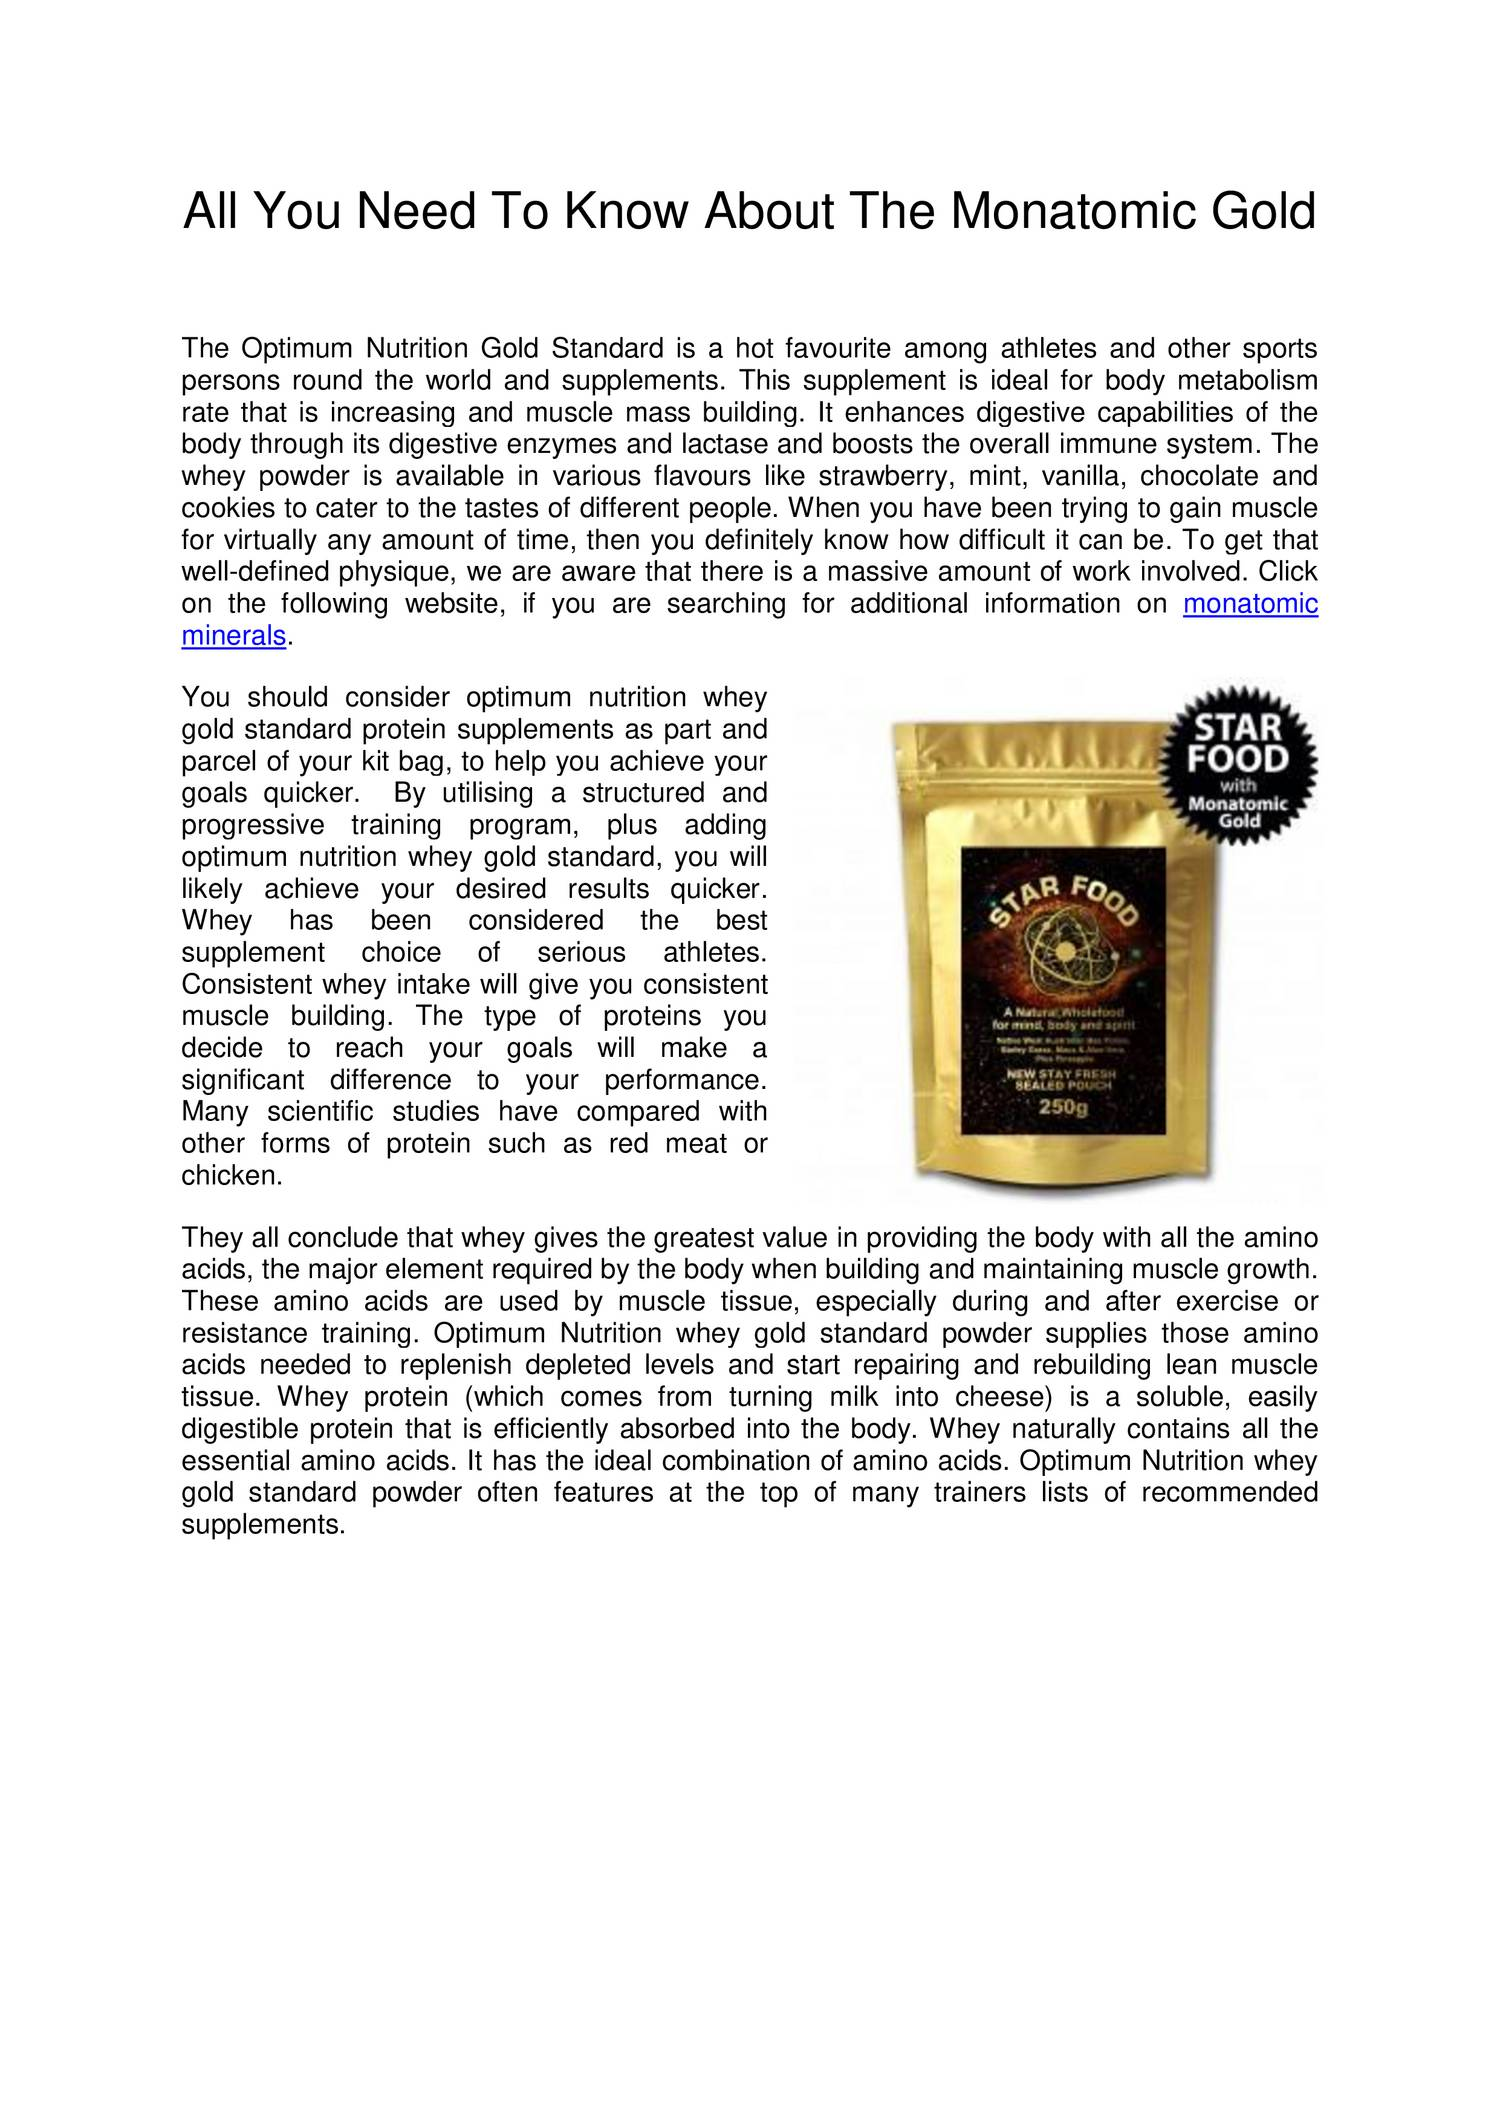 All You Need To Know About The Monatomic Gold pdf | DocDroid